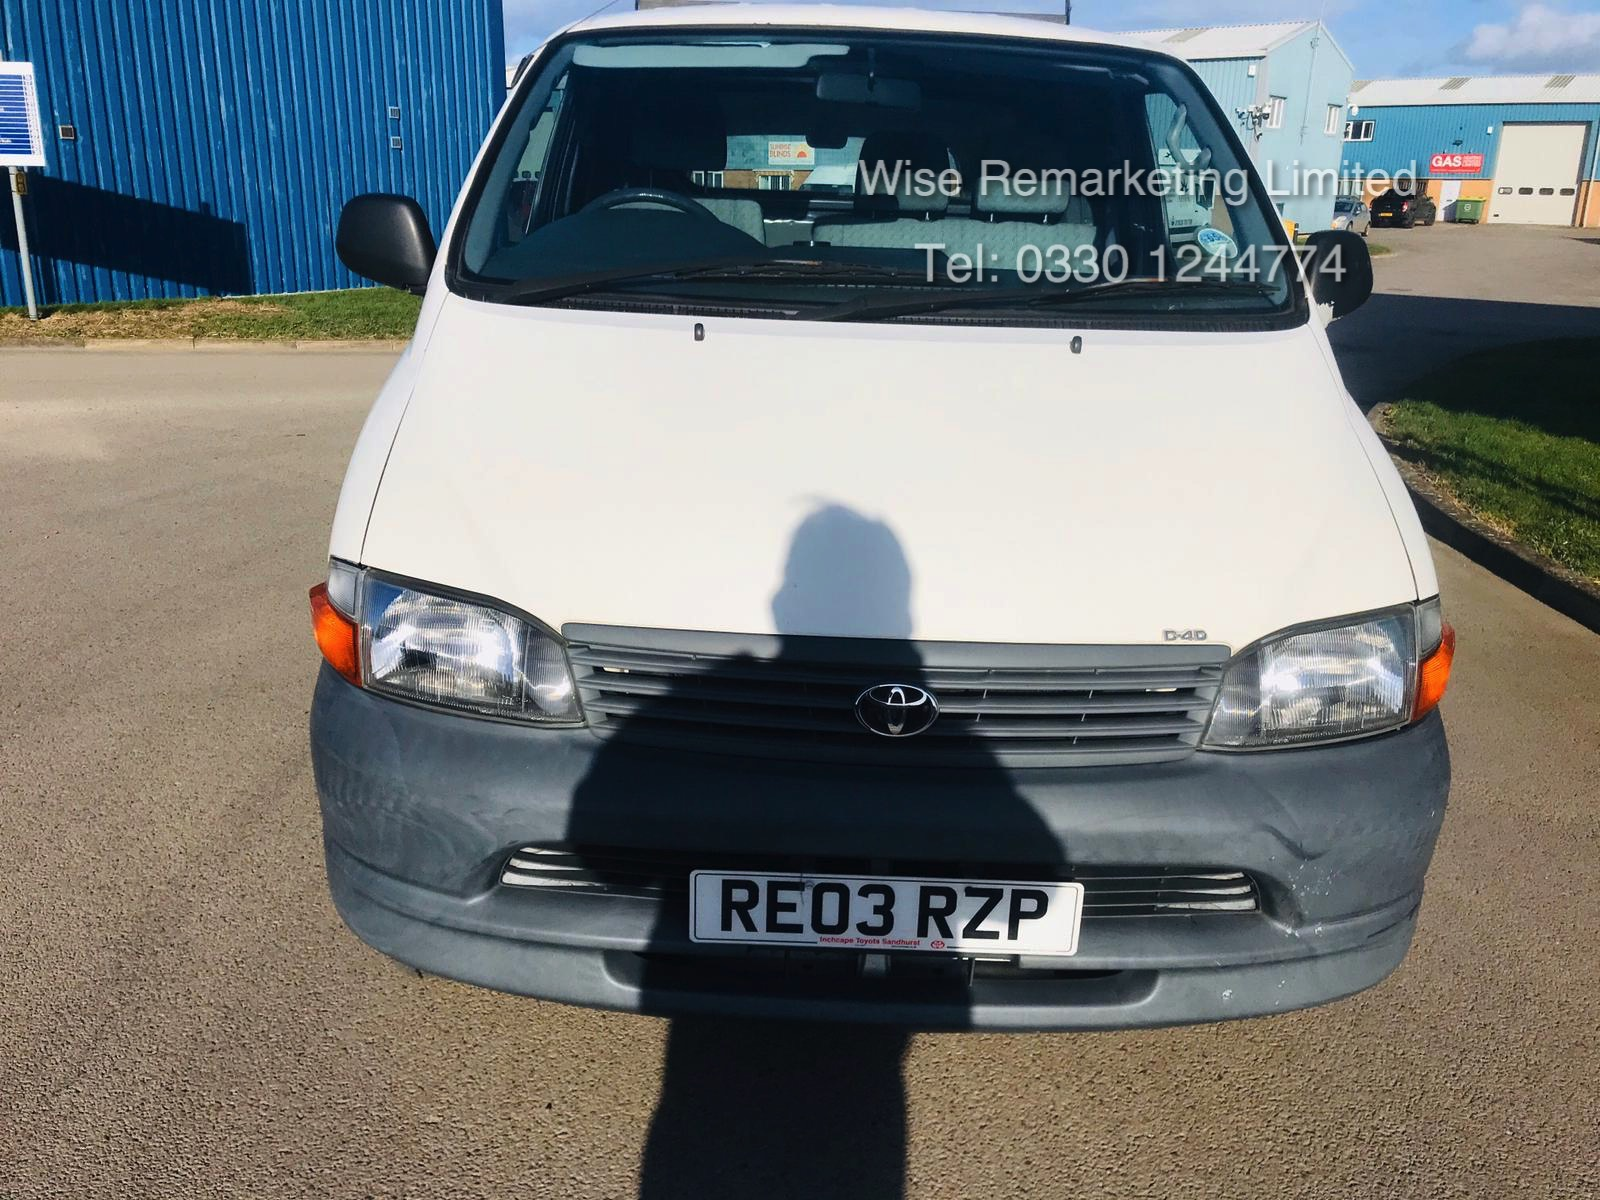 Toyota Hiace 300 GS 2.5 D4D - 2003 03 Reg - 1 Keeper From New - 3 Seater - Roof Rack - Image 4 of 15